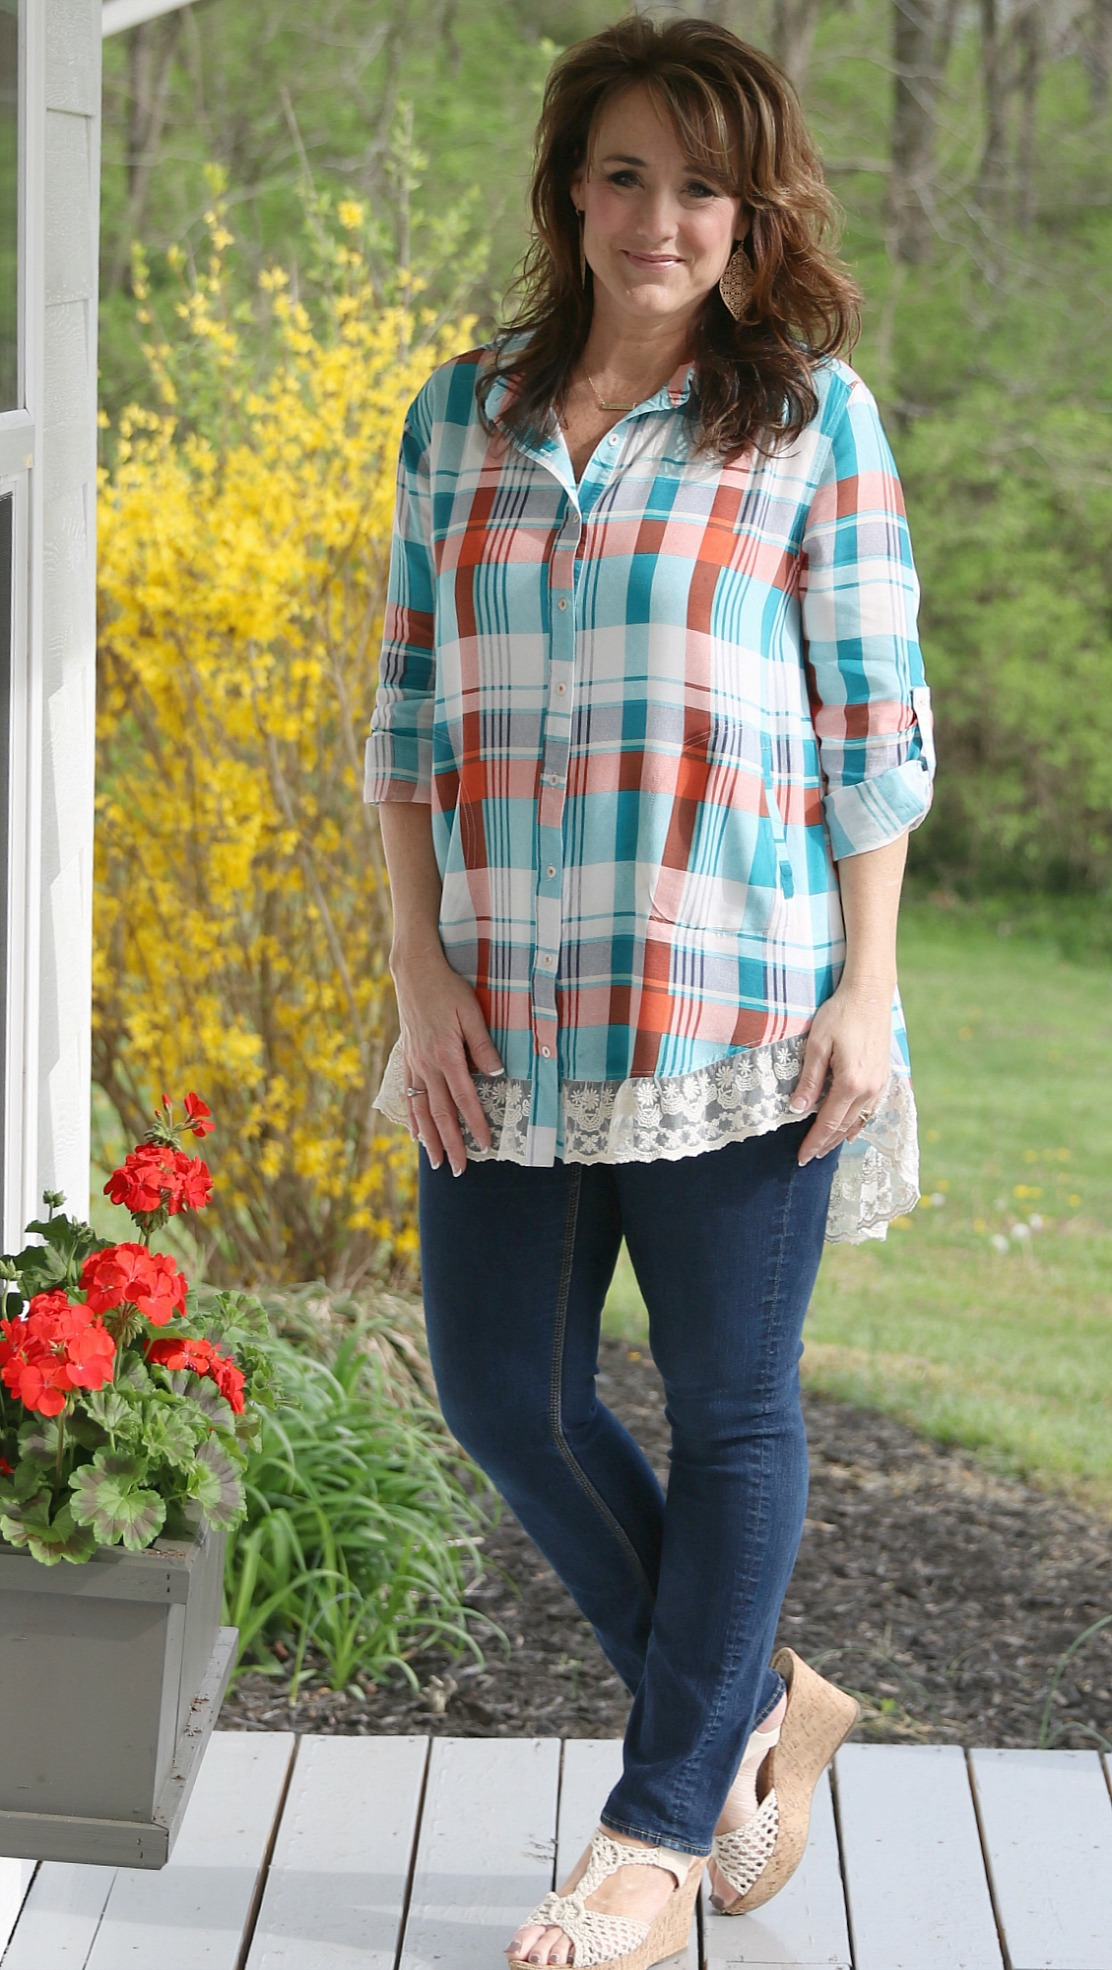 Mad for Plaid! {Fashion Friday}